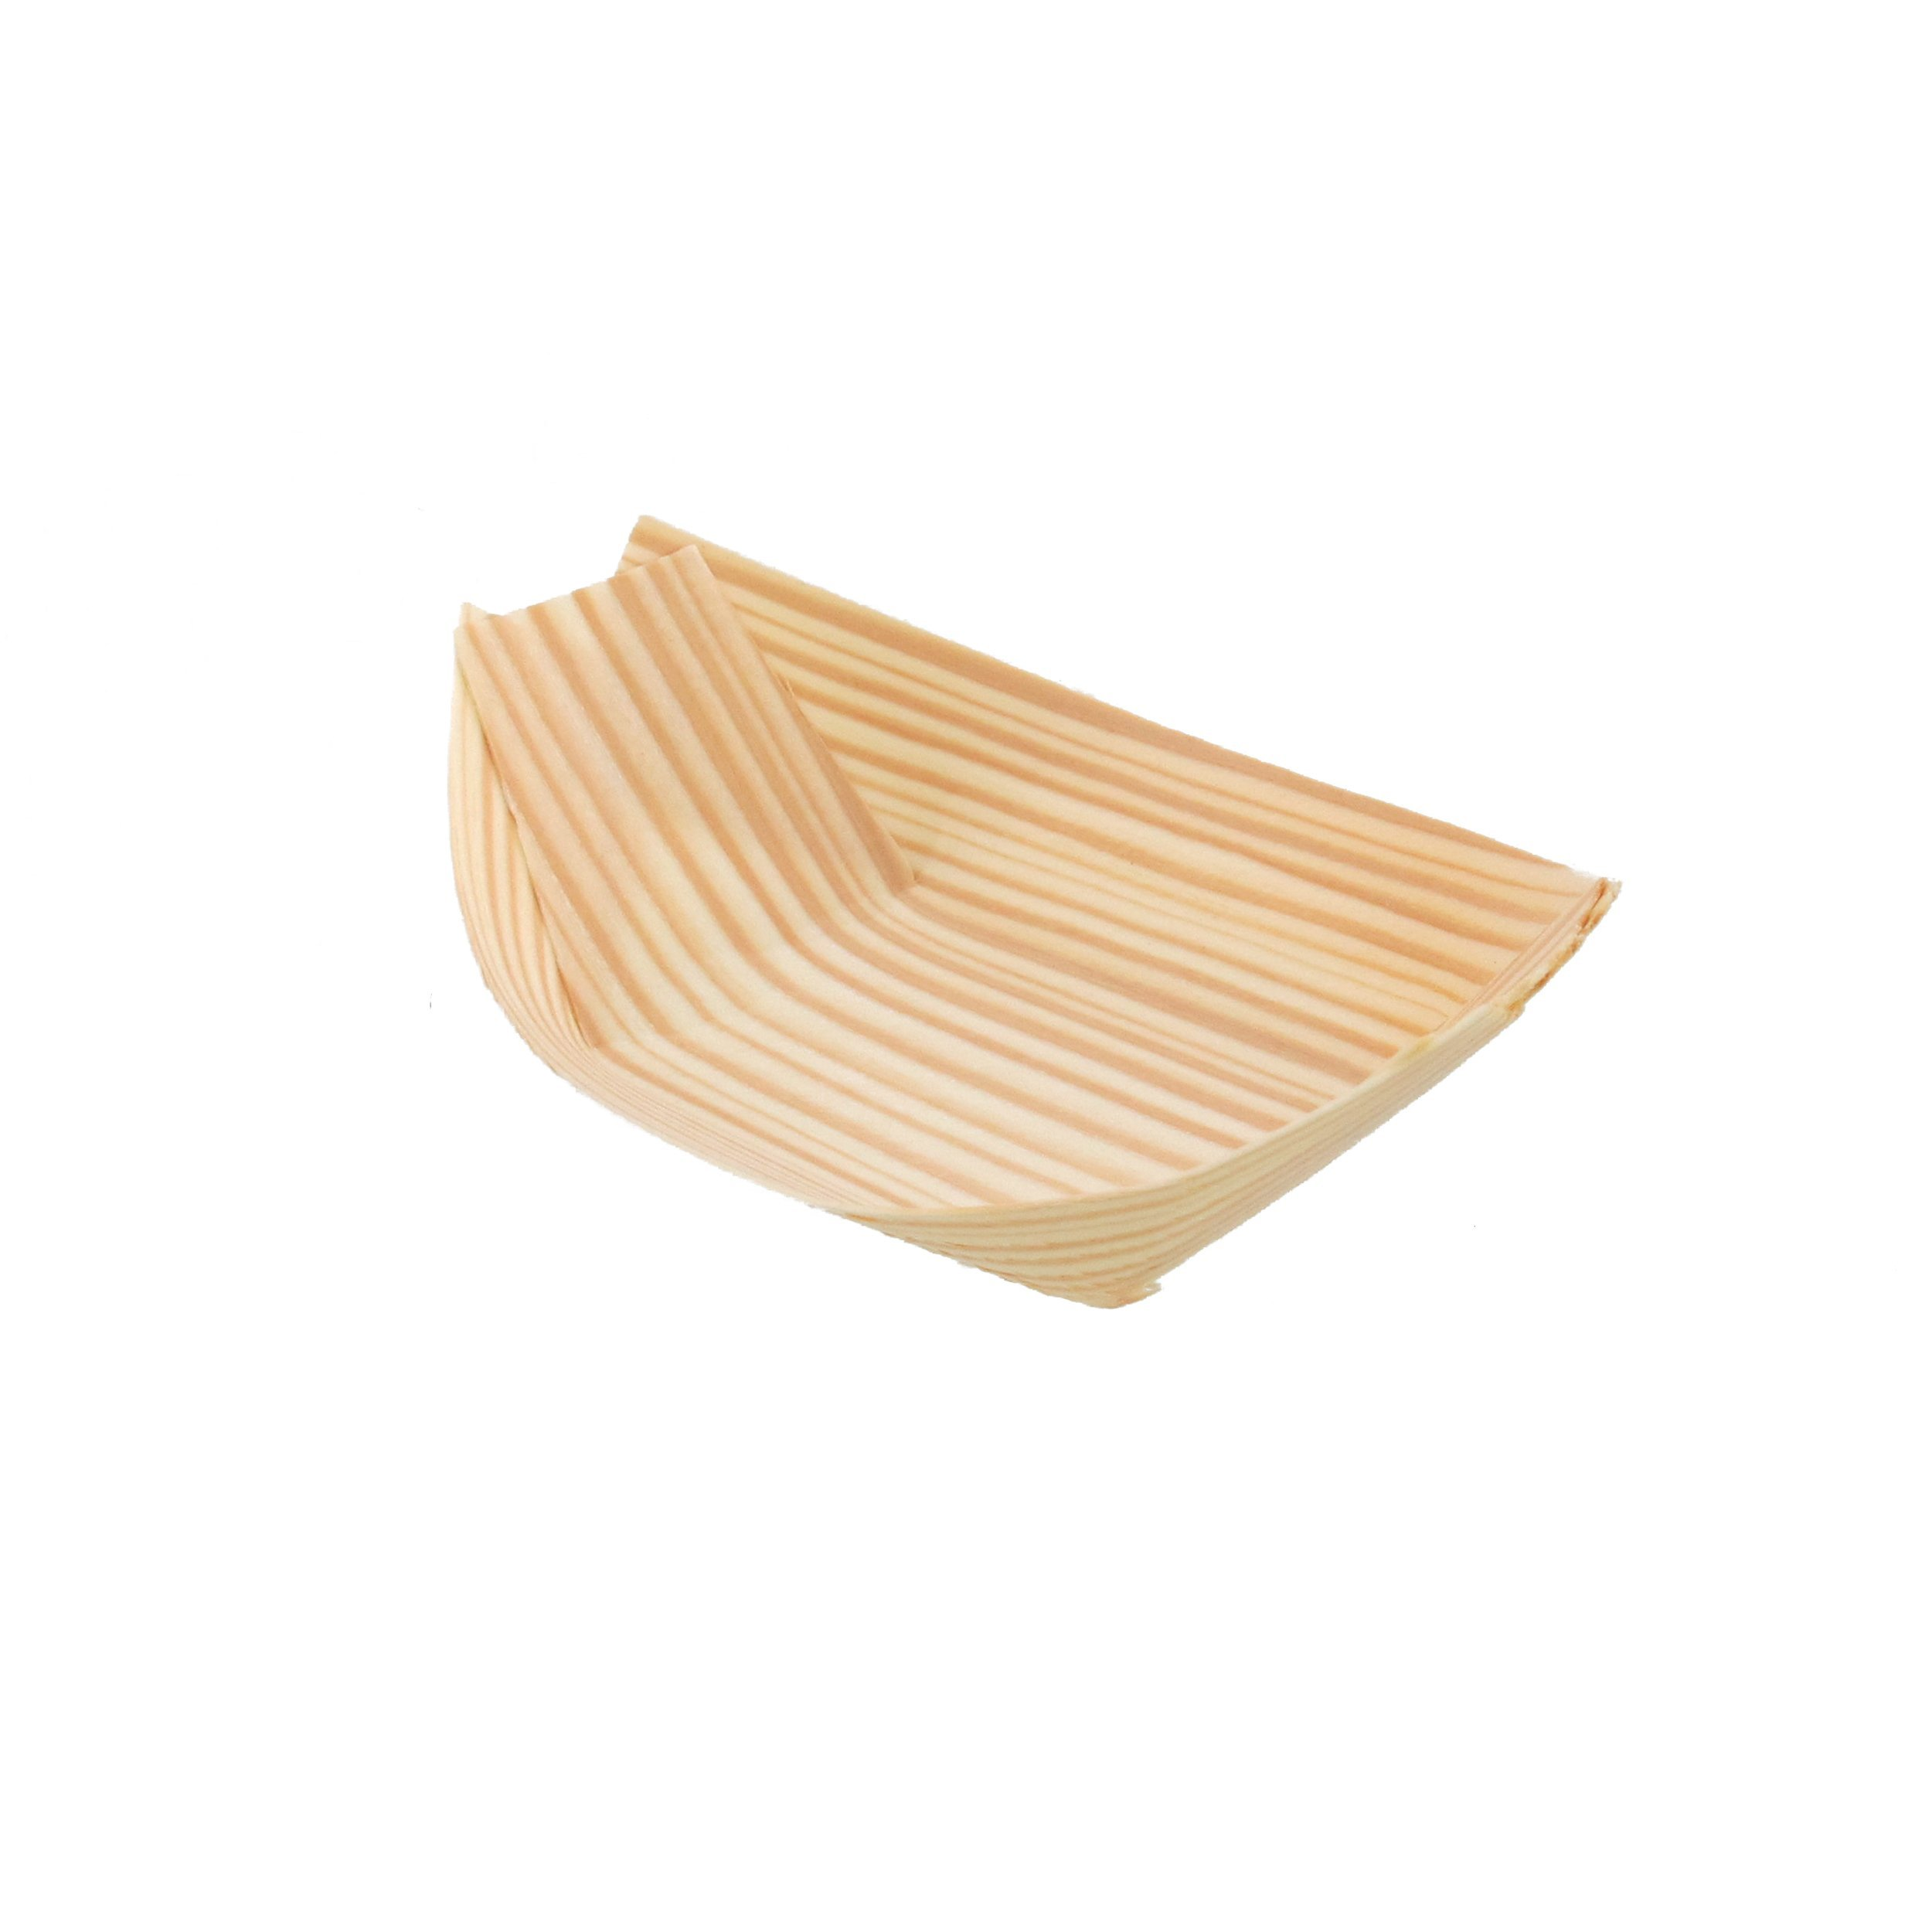 BambooMN Brand - Disposable Wood Boat Plates / Dishes, 4.3'' Long x 2.5'' Wide x 1'' High, 100 Pieces